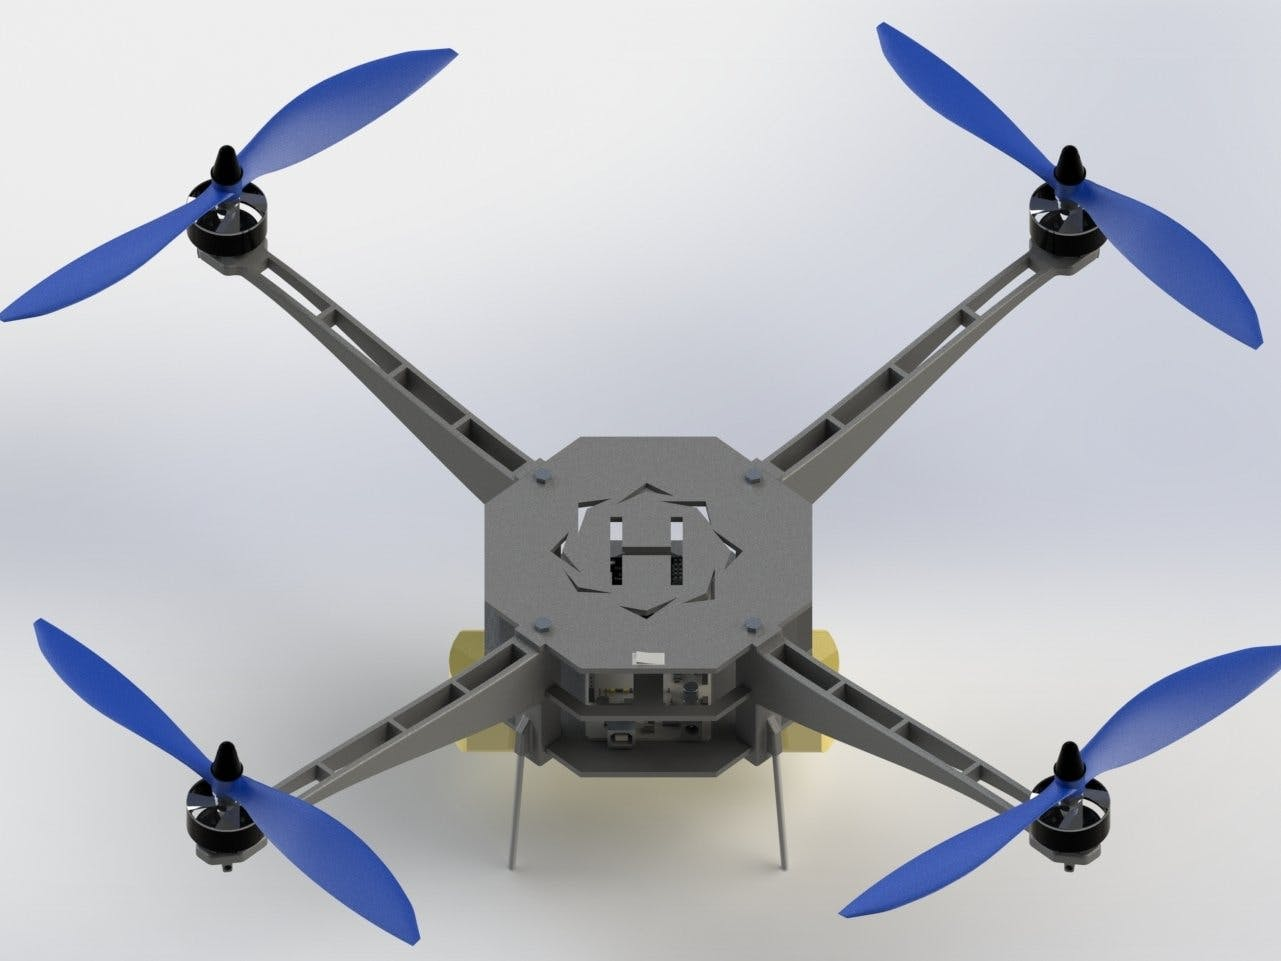 Helios - Autonomous Quadcopter Based on Arduino